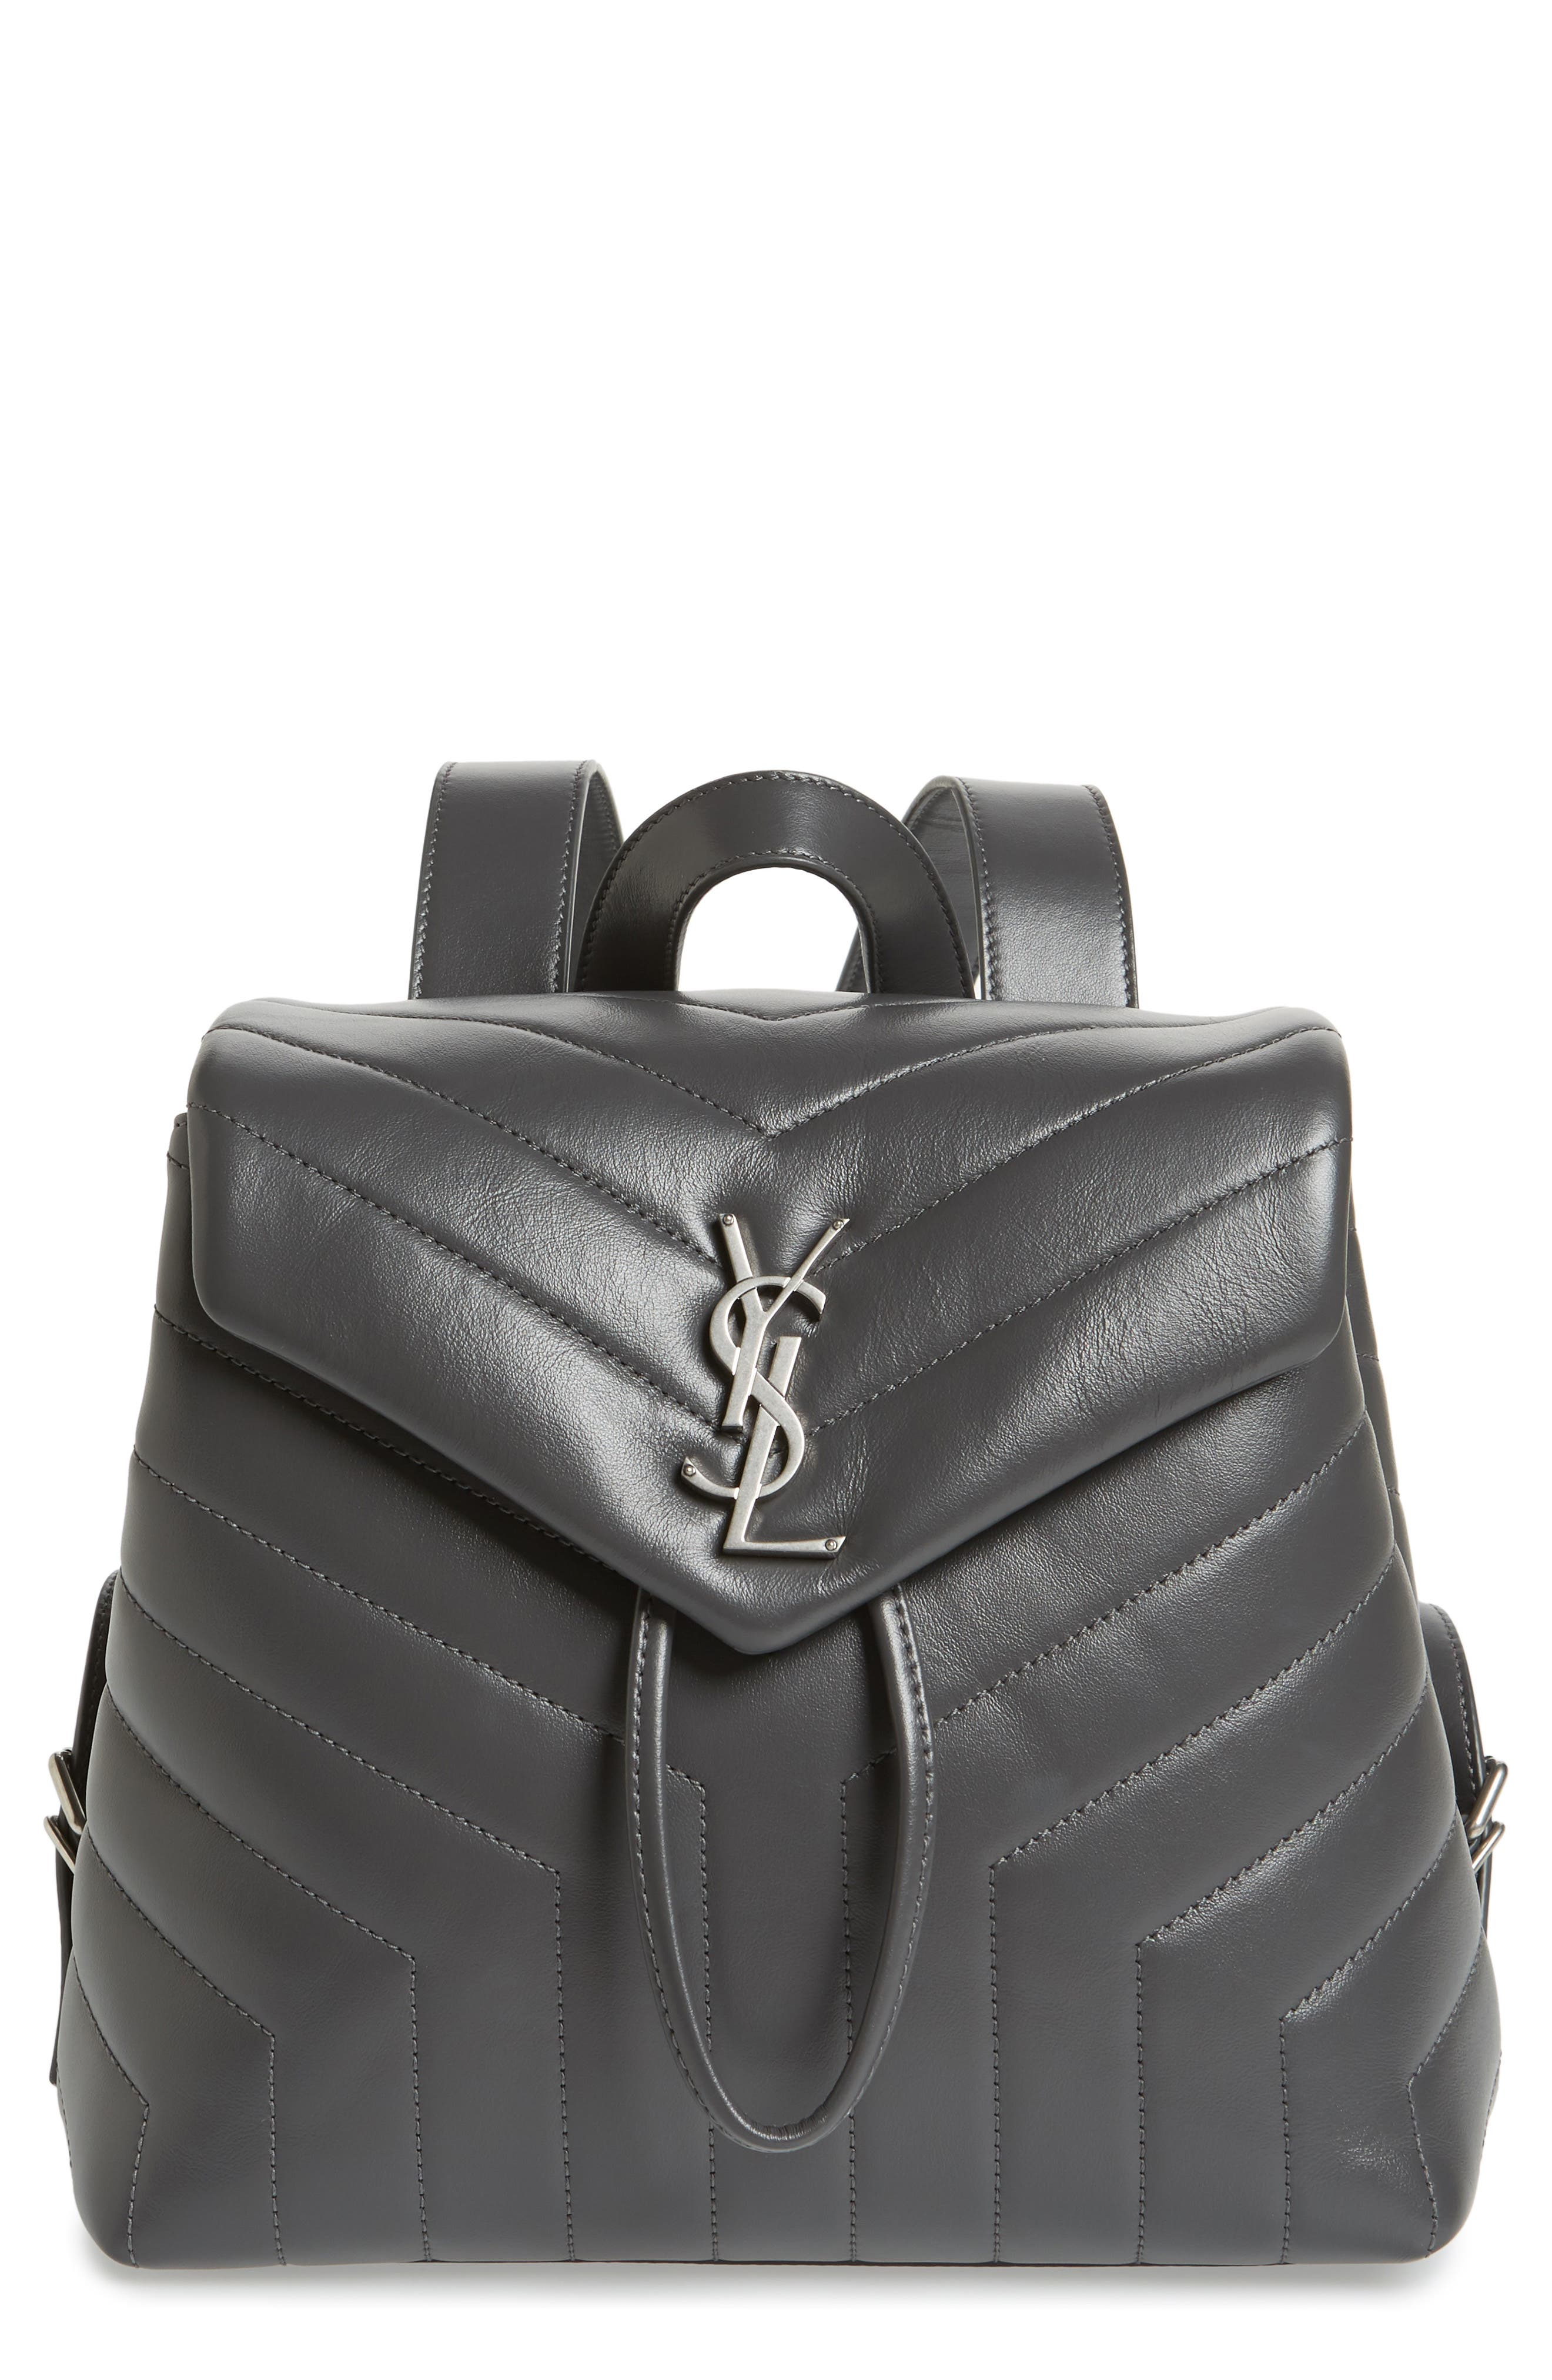 Small Loulou Quilted Calfskin Leather Backpack,                         Main,                         color, Storm/ Storm